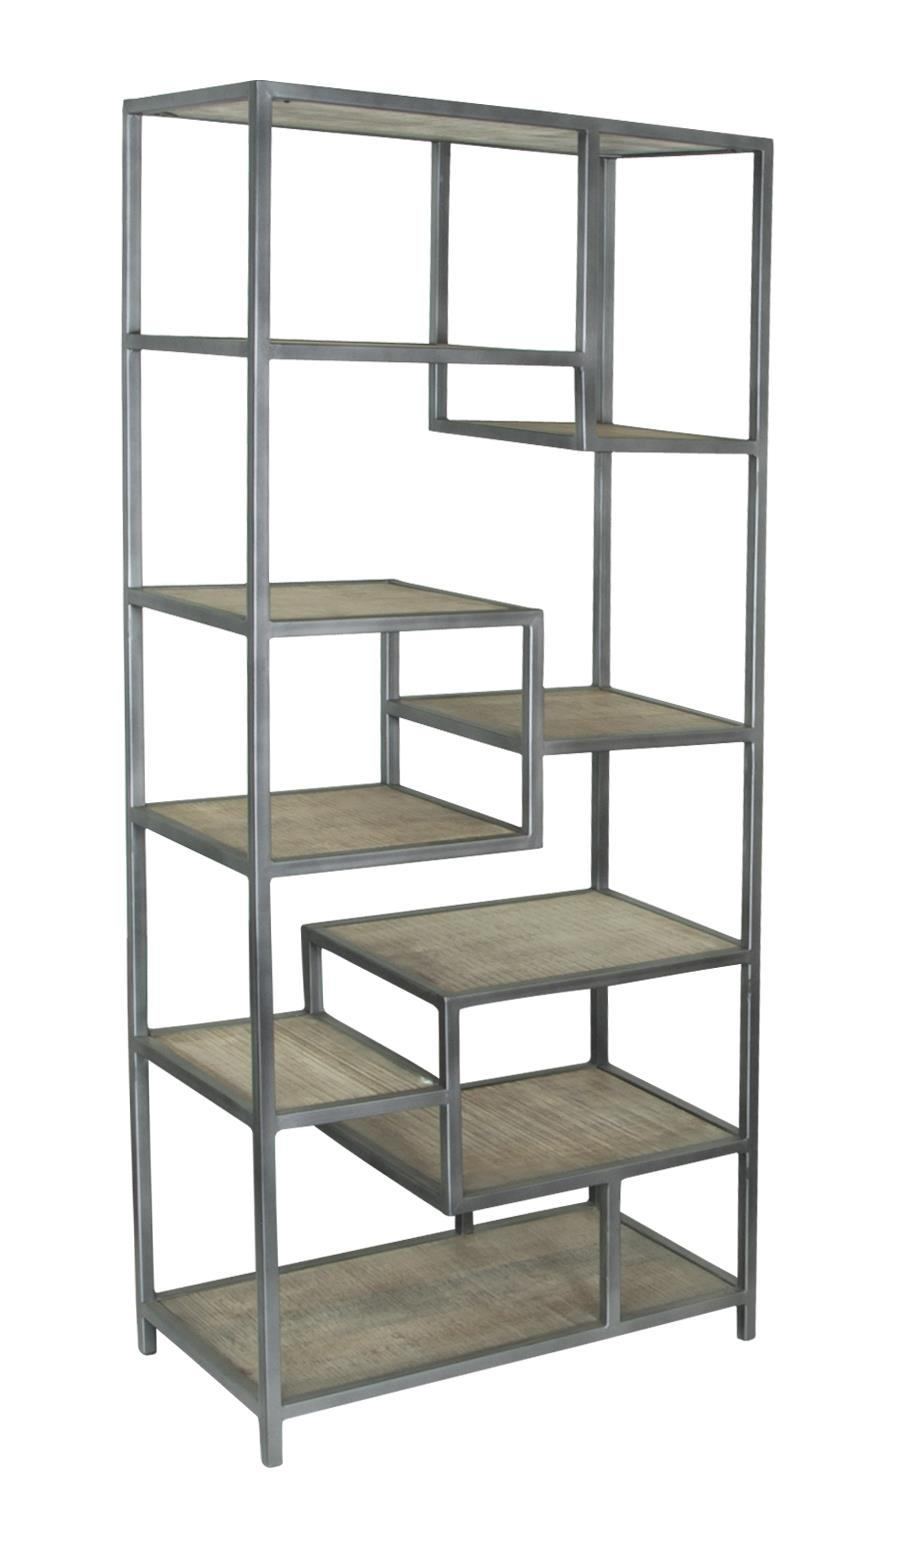 C2C Accents Tall Bookcase by C2C at Walker's Furniture